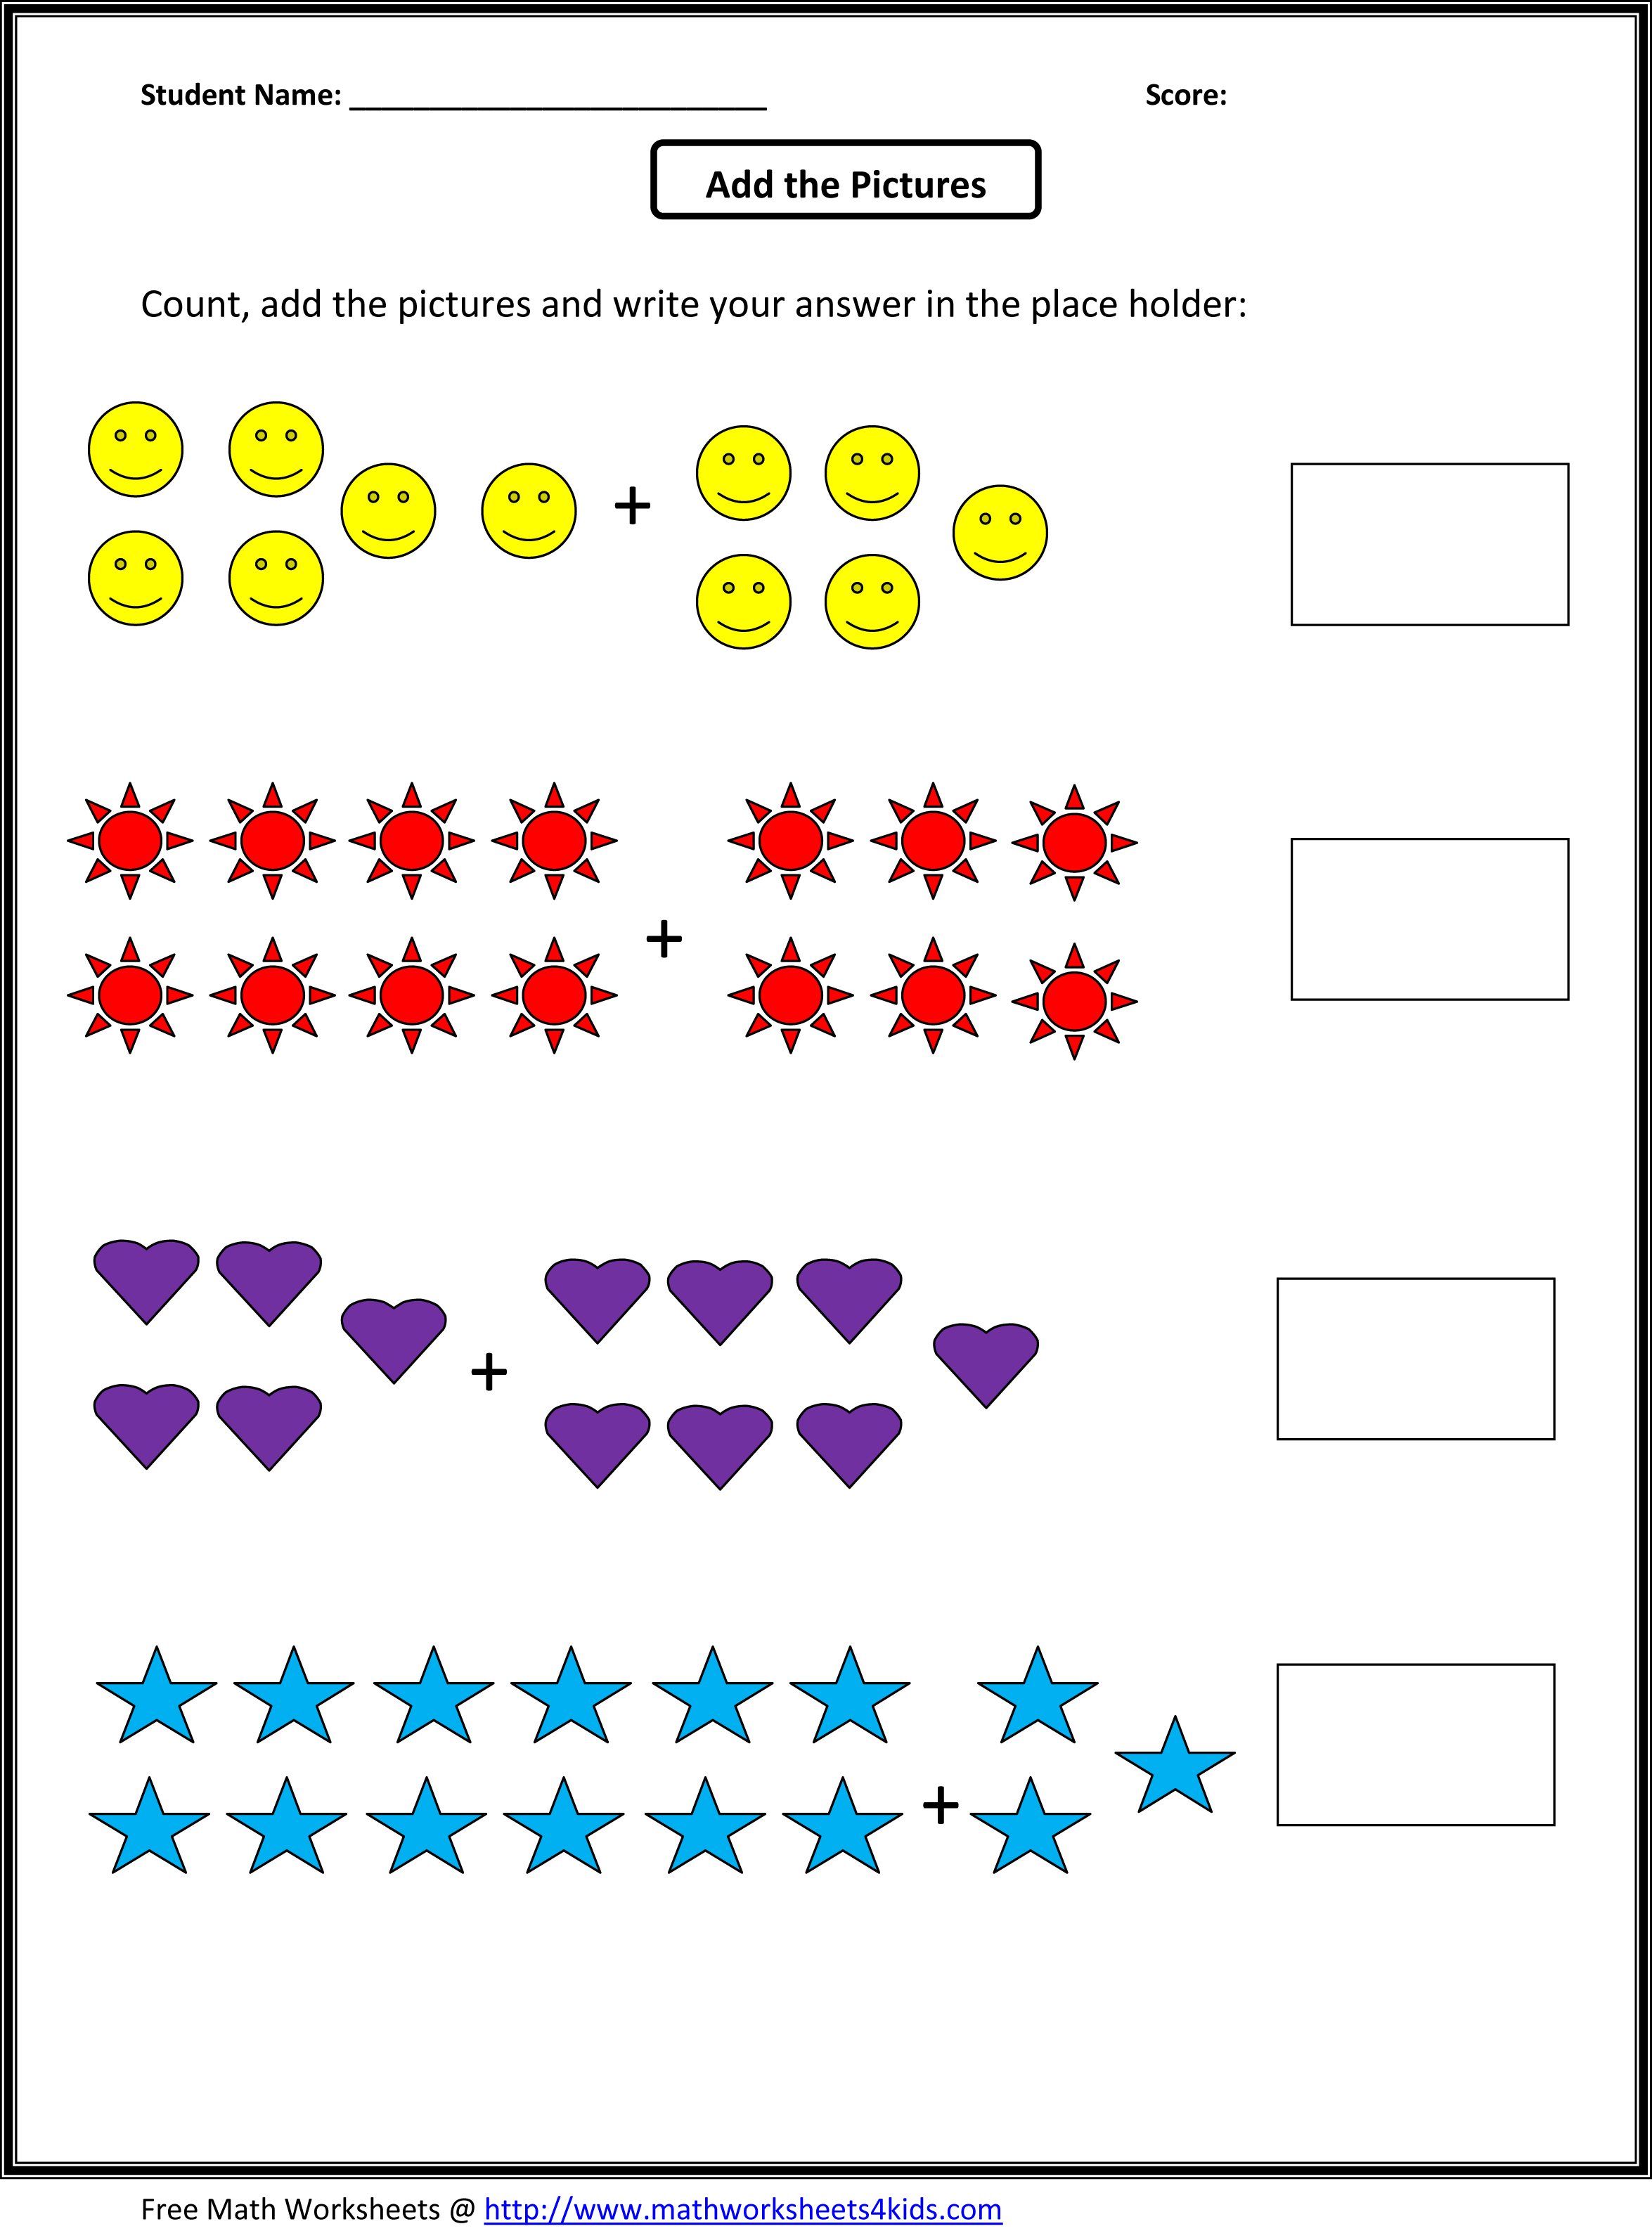 Proatmealus  Pleasing Grade  Maths Worksheet  Reocurent With Magnificent Math Worksheets For St Grade Free  Reocurent With Astonishing Simple And Compound Interest Worksheet Answers Also Th Grade Biology Worksheets In Addition Two Way Frequency Table Worksheet Answers And Net Ionic Equation Worksheet Answers As Well As Number The Stars Worksheets Additionally Tracing Shapes Worksheets From Reocurentcom With Proatmealus  Magnificent Grade  Maths Worksheet  Reocurent With Astonishing Math Worksheets For St Grade Free  Reocurent And Pleasing Simple And Compound Interest Worksheet Answers Also Th Grade Biology Worksheets In Addition Two Way Frequency Table Worksheet Answers From Reocurentcom